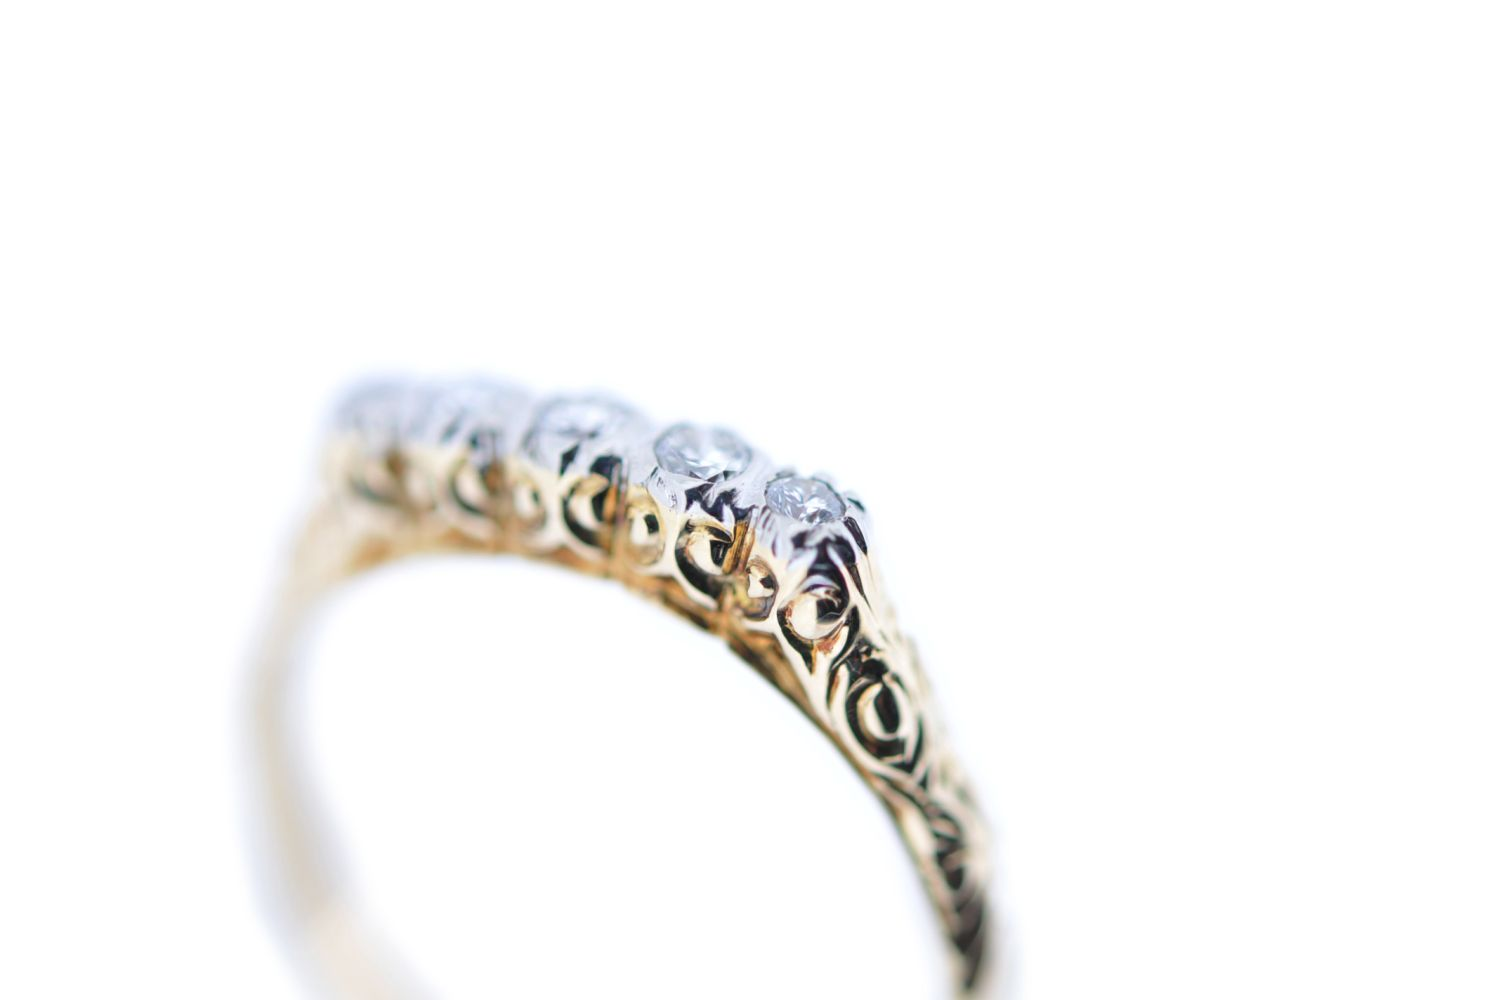 #43 Eternity Ring | Allianzring Image